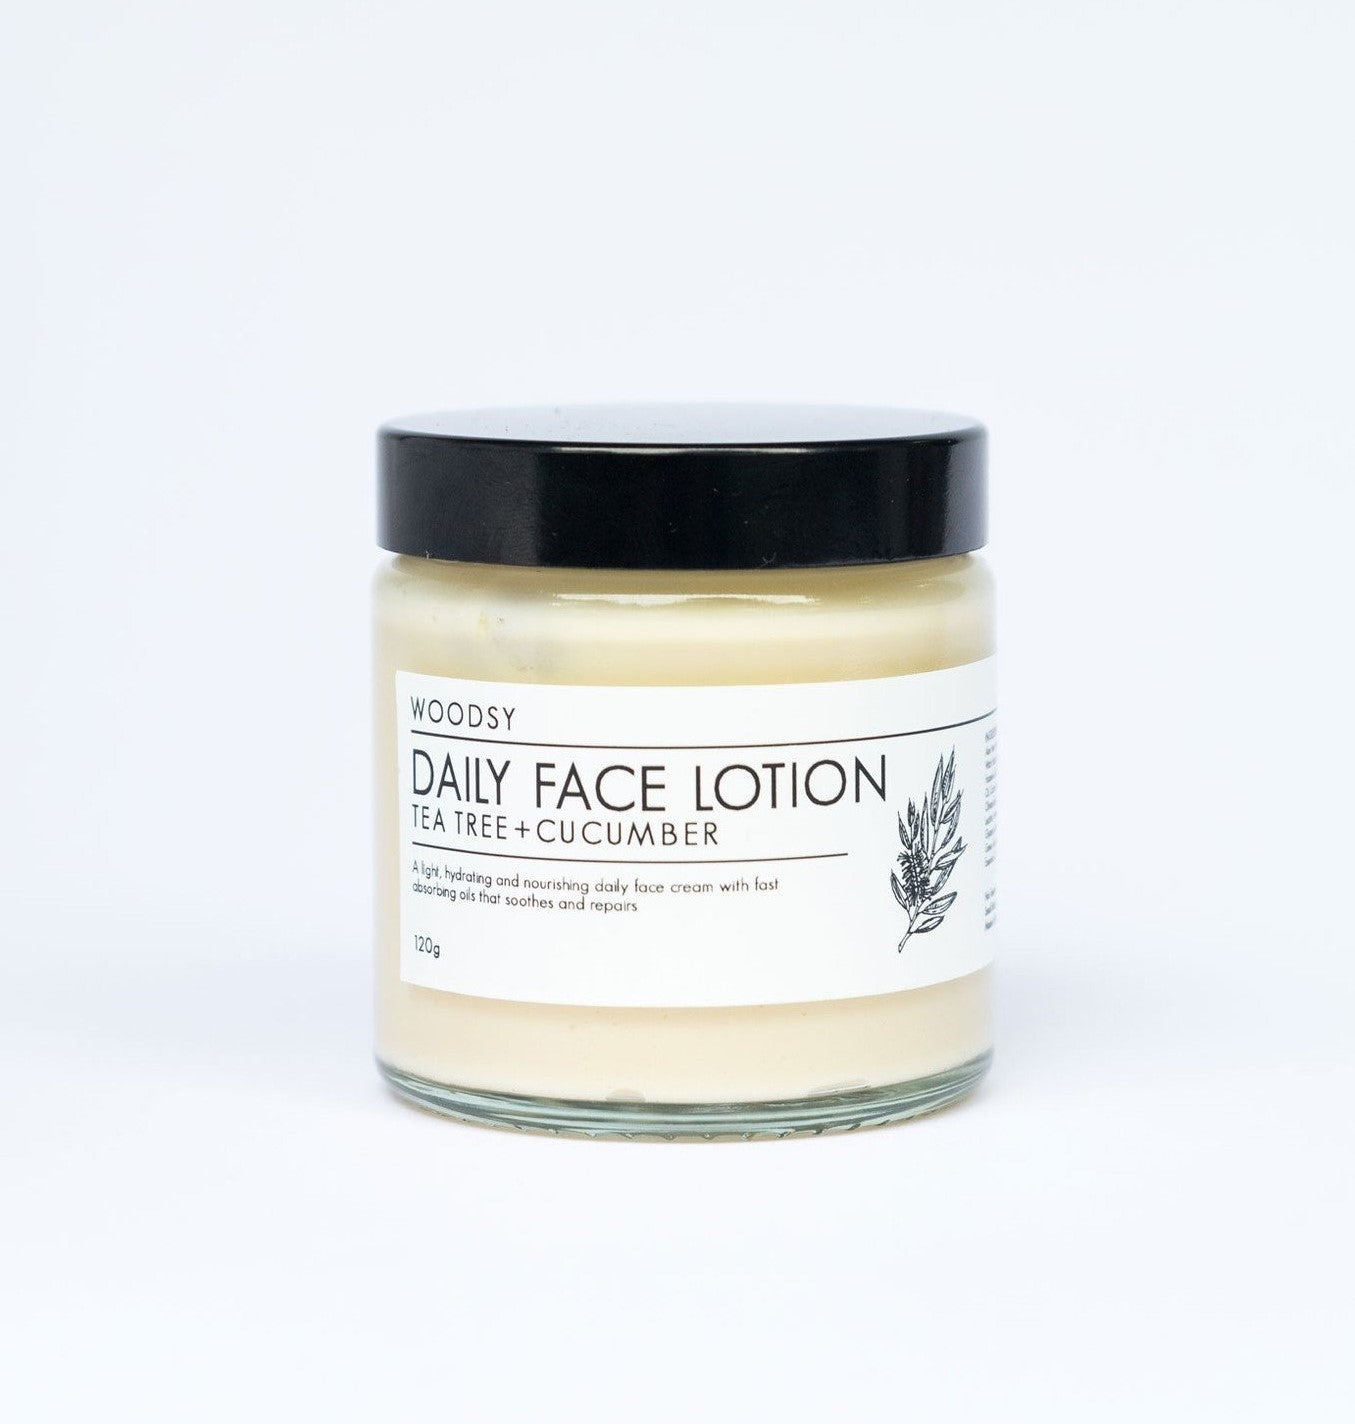 Daily Face Lotion - Tea Tree & Cucumber